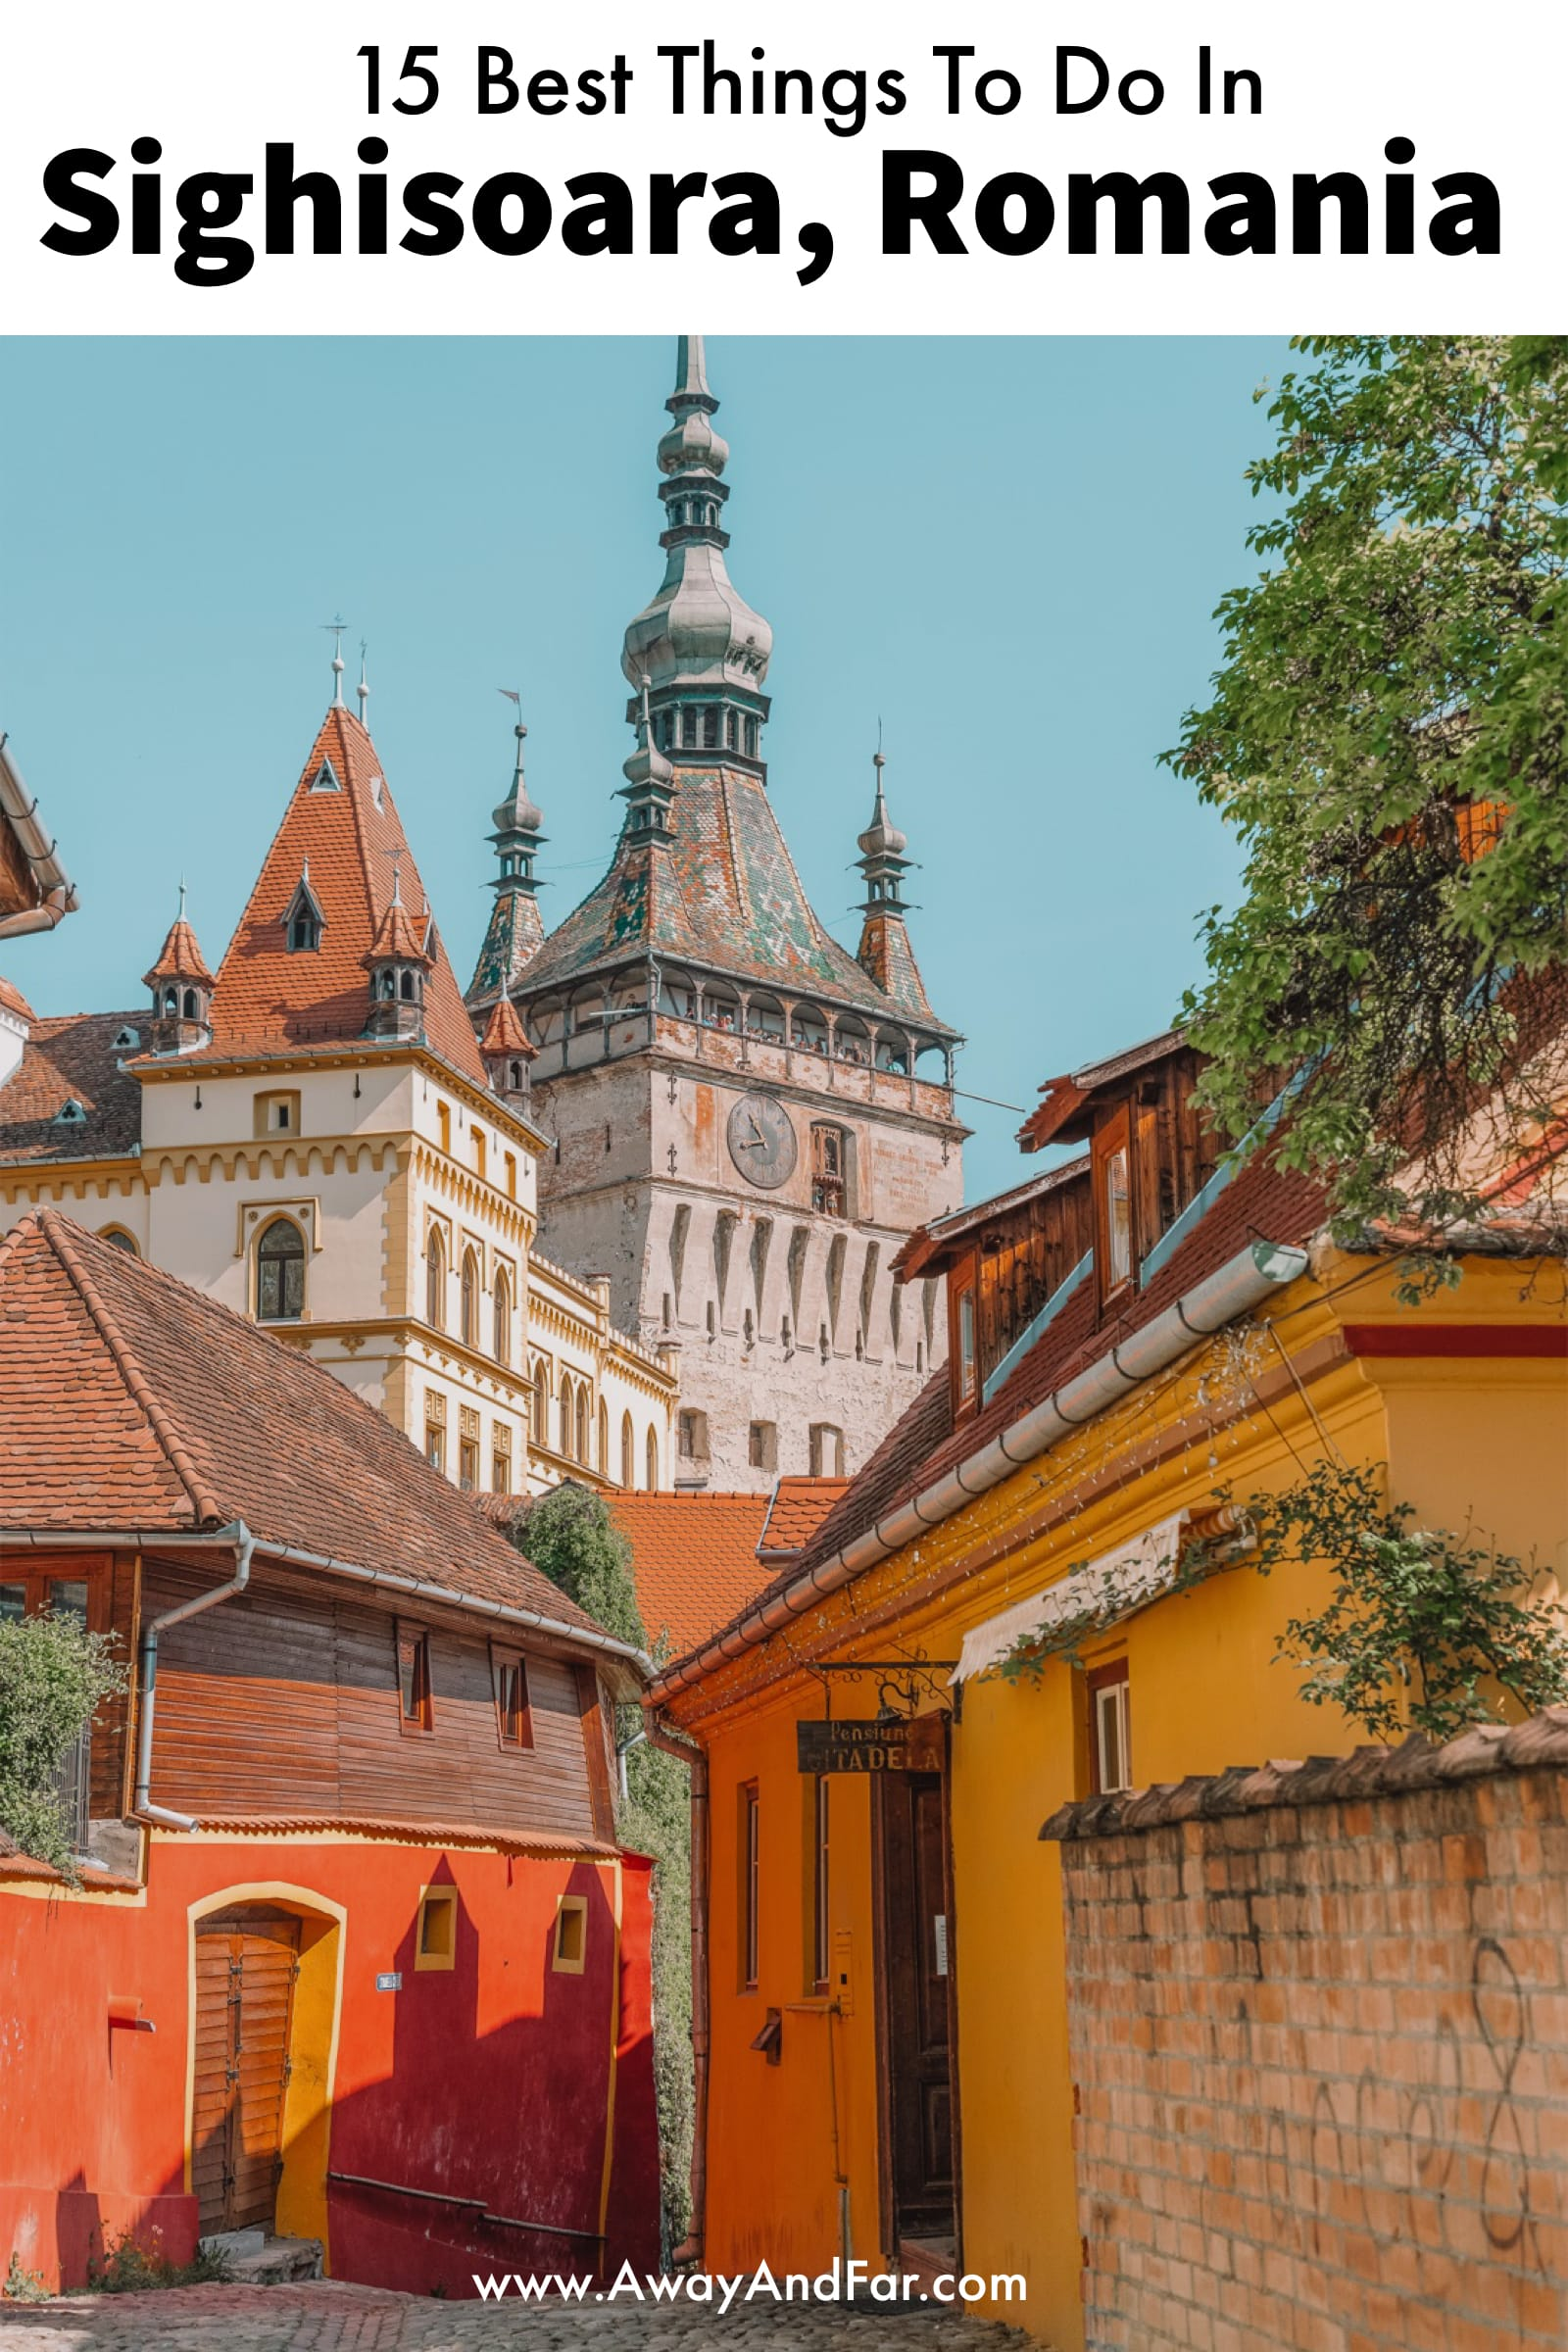 15 Best Things To Do In Sighisoara, Romania (1)